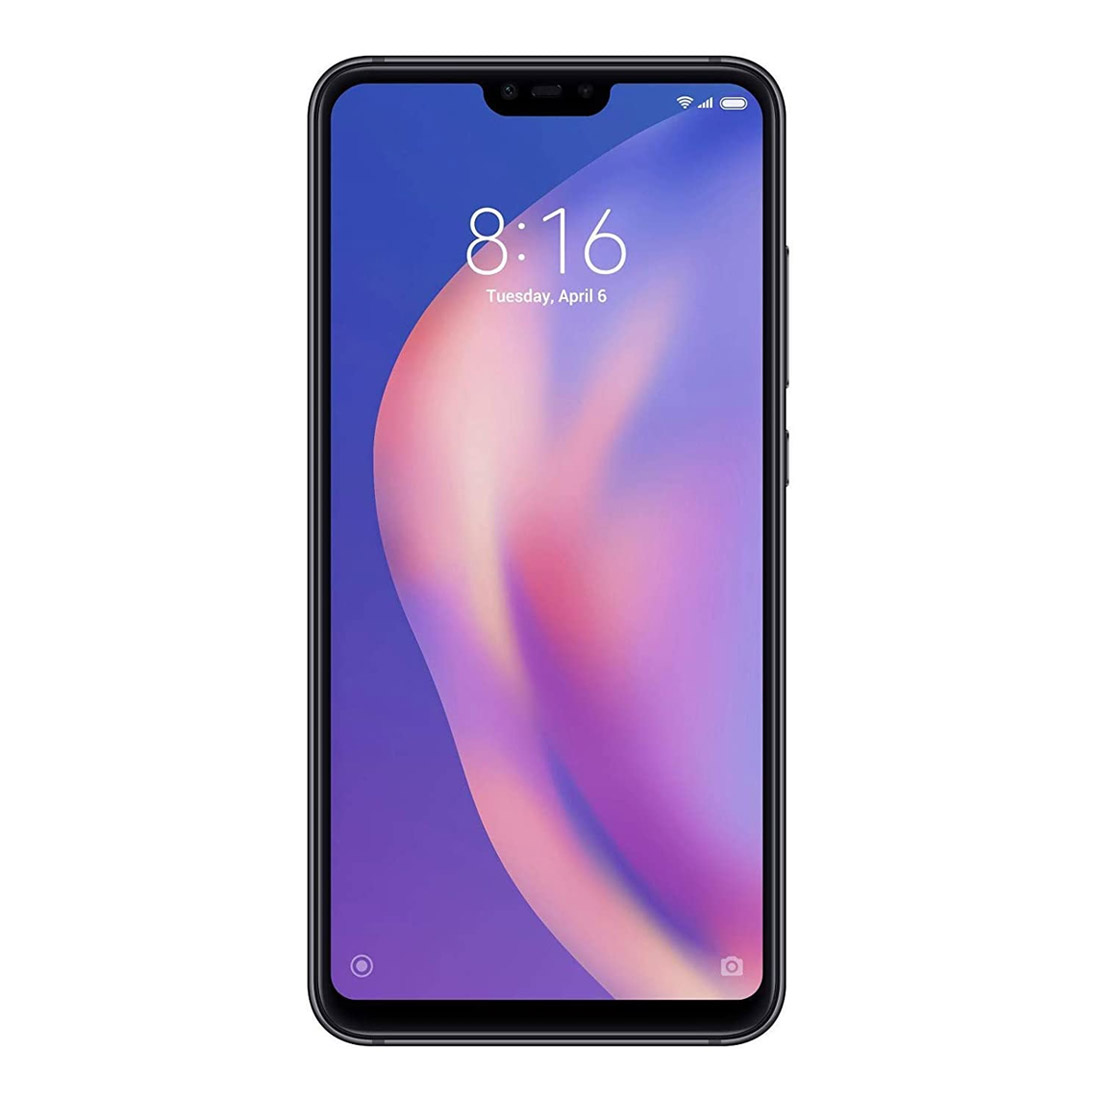 Xiaomi Mi 8 Lite (Dual Sim 4G, 64GB/4GB) - Midnight Black